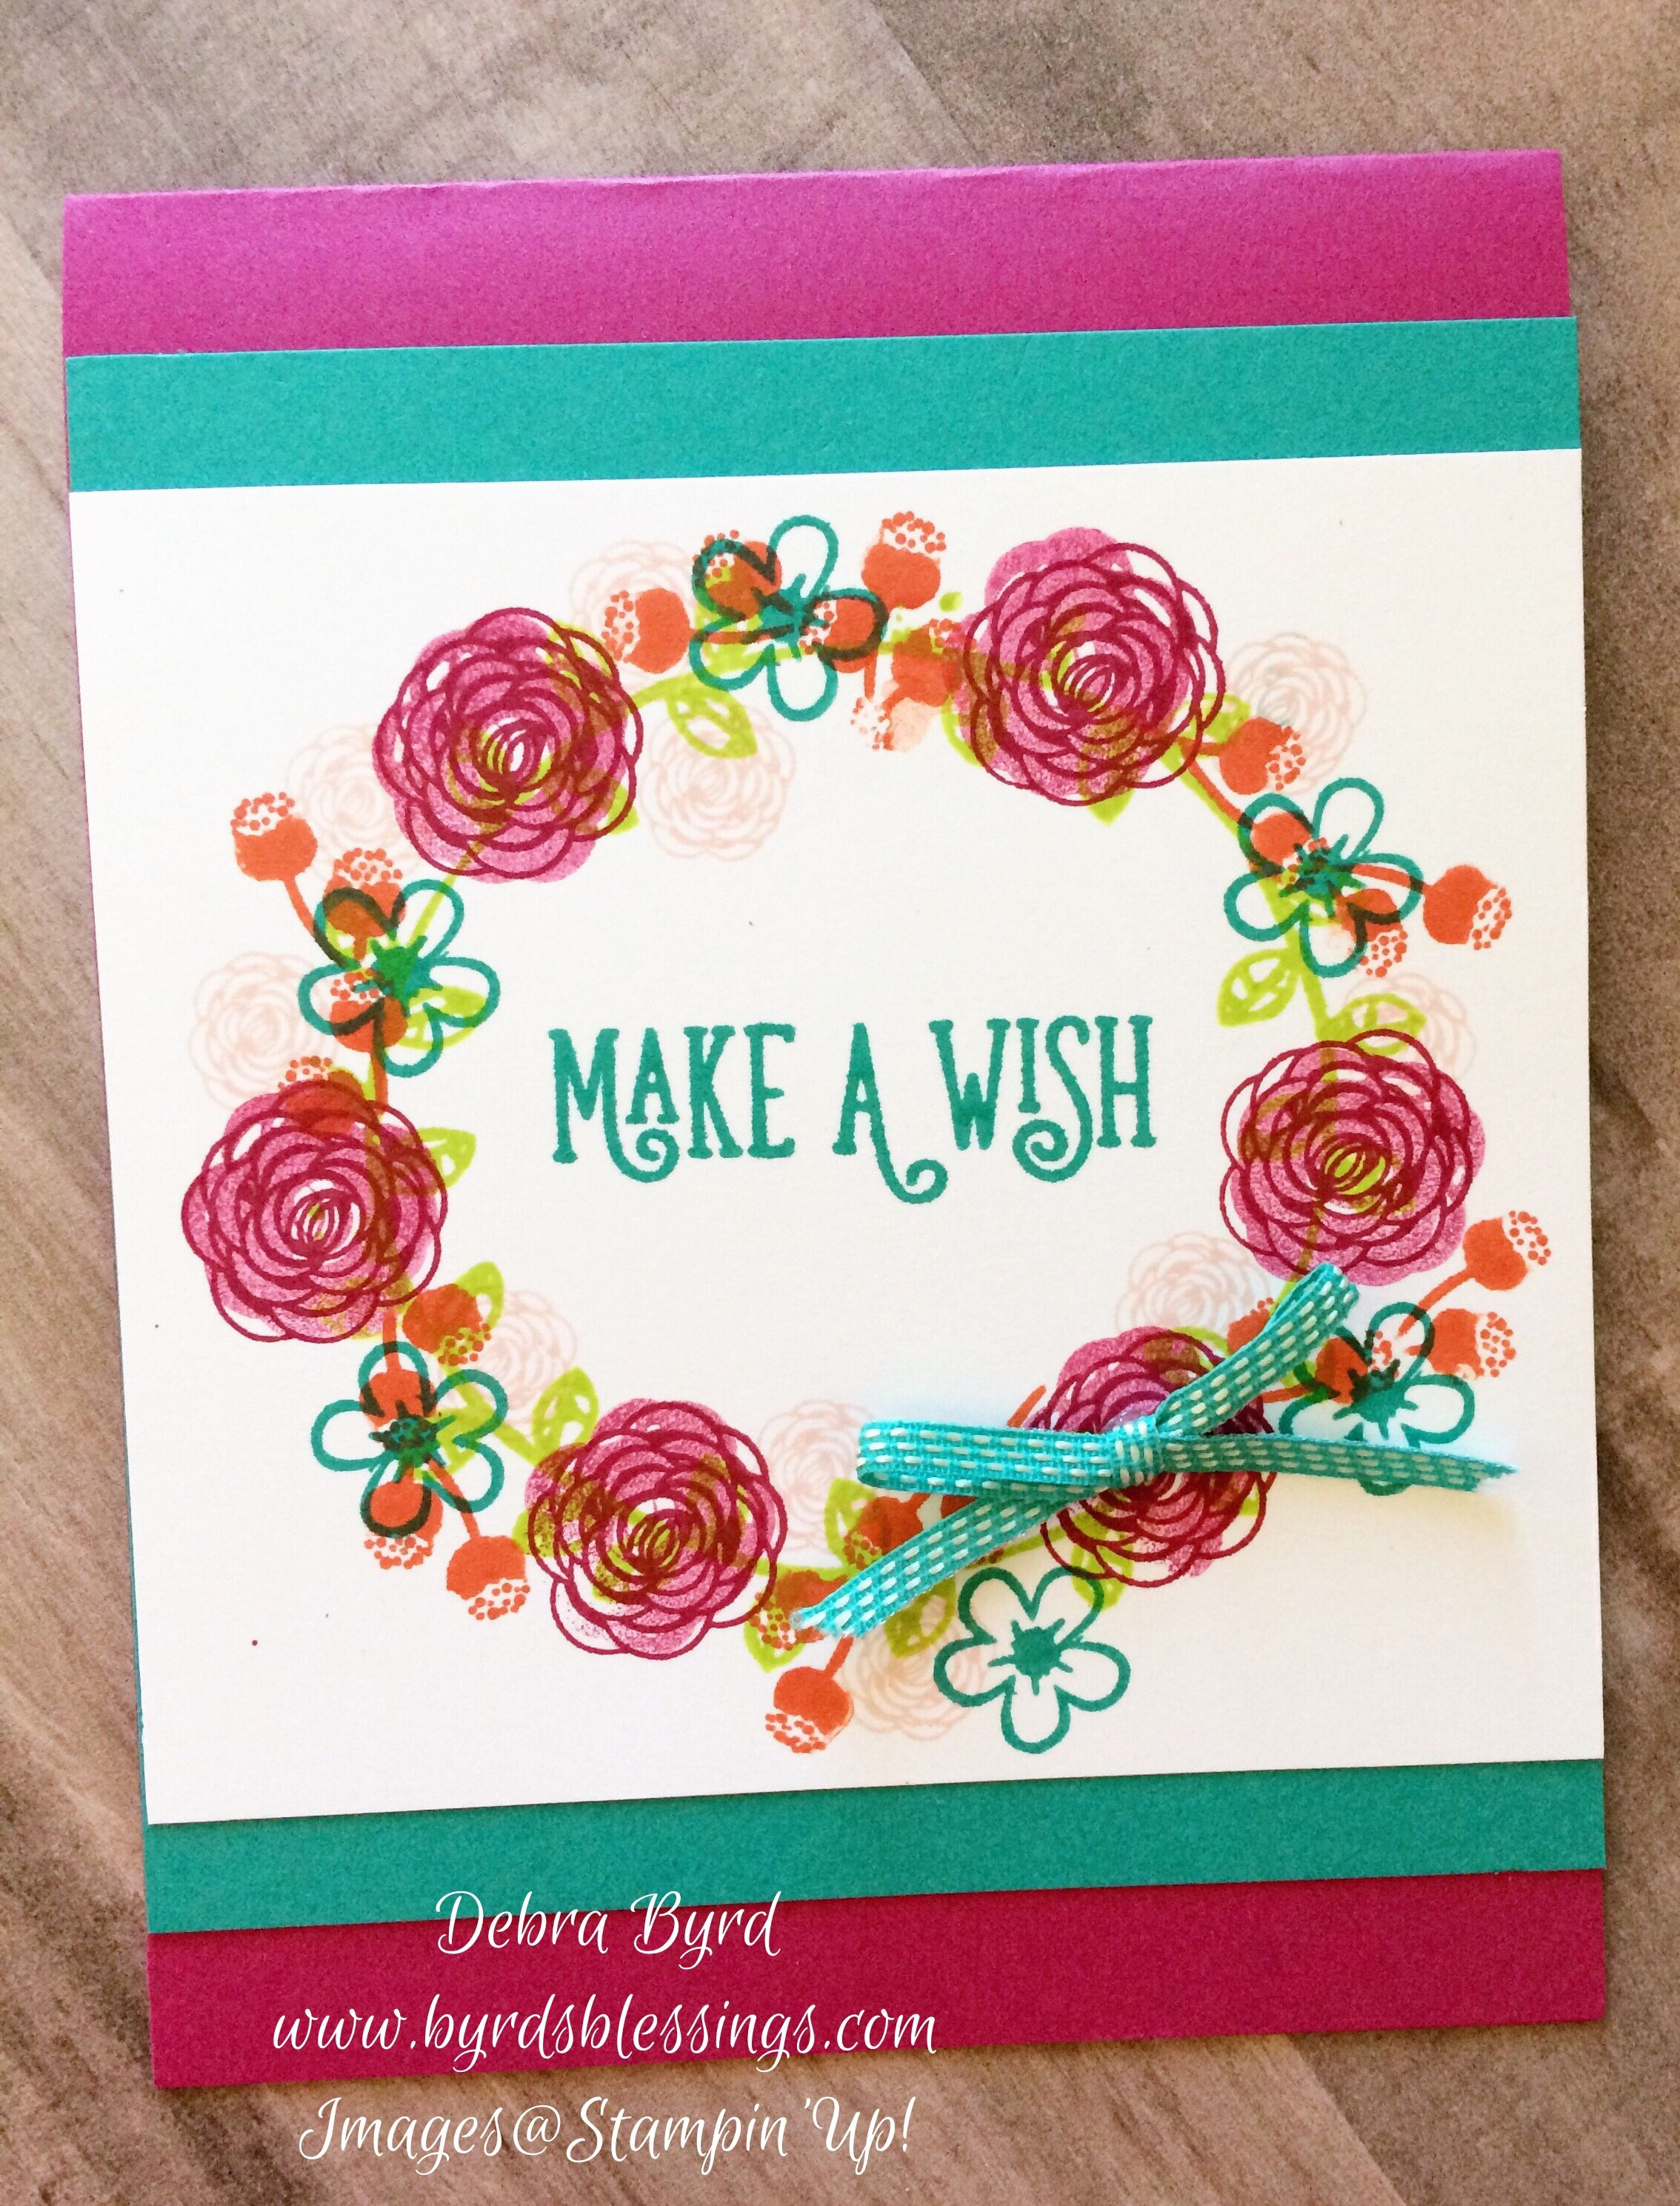 Happy birthday gorgeous stampin up byrdsblessings 2017 just wanted to share a couple of cards using the new upcoming stampdie bundle called happy birthday gorgeous and some of the new incolors kristyandbryce Images